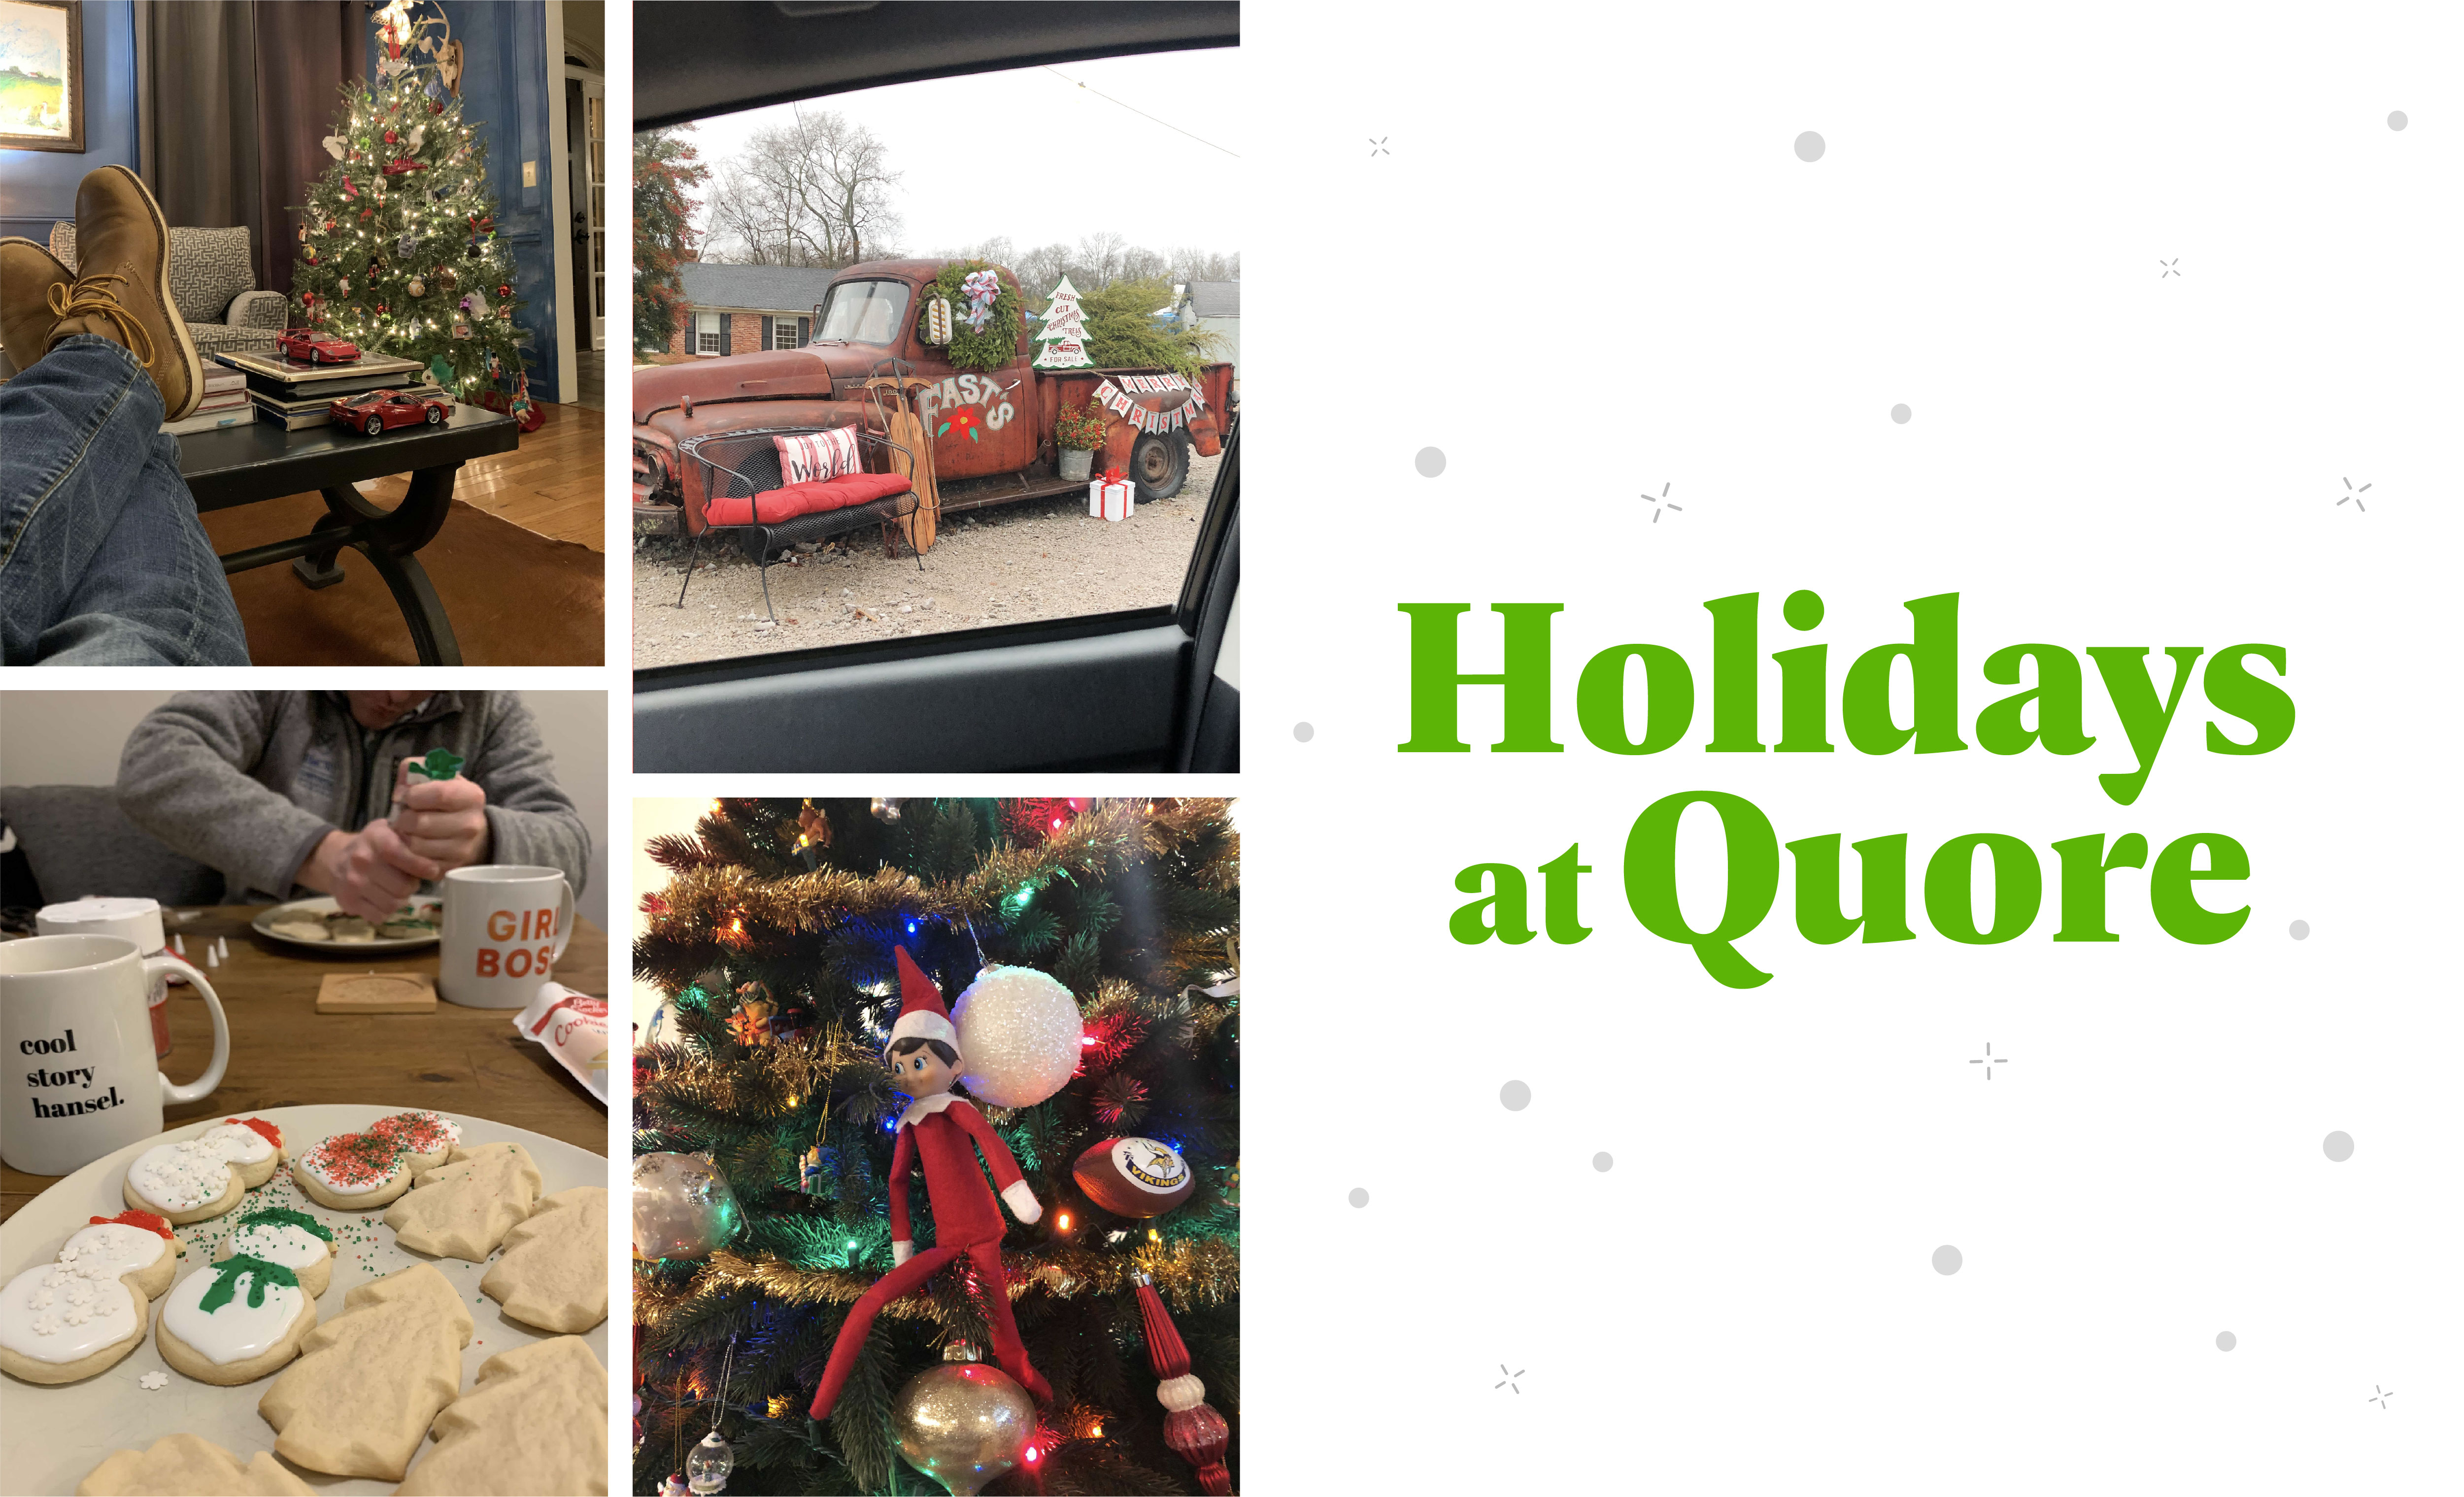 Holidays at Quore